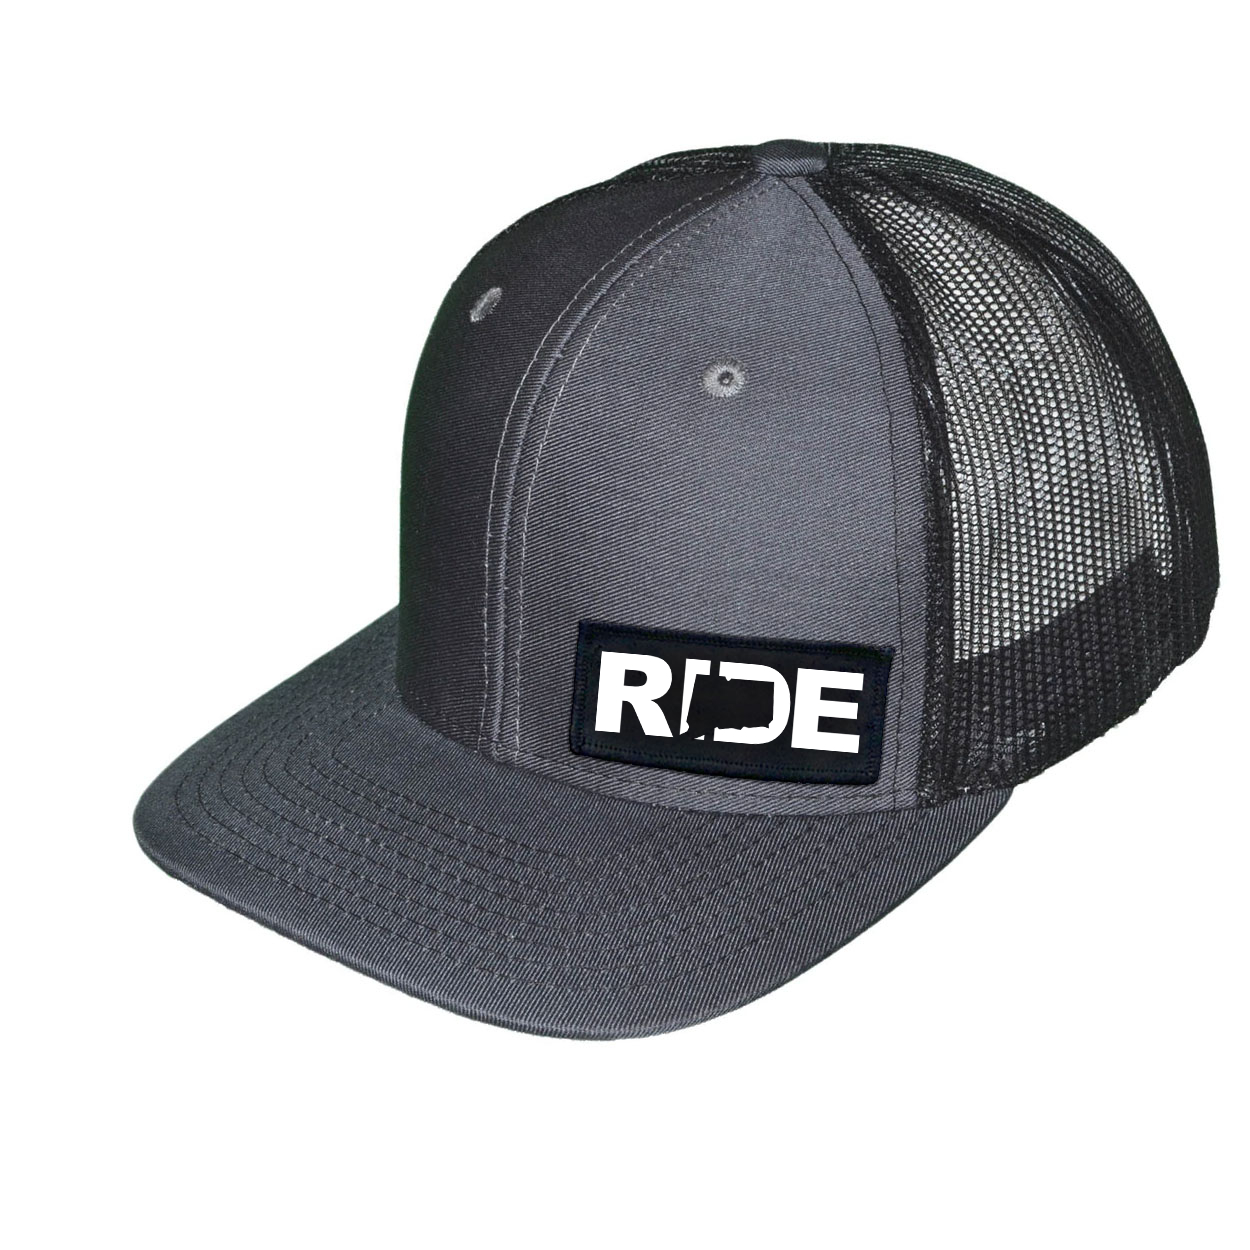 Ride Connecticut Night Out Woven Patch Snapback Trucker Hat Dark Gray/Black (White Logo)